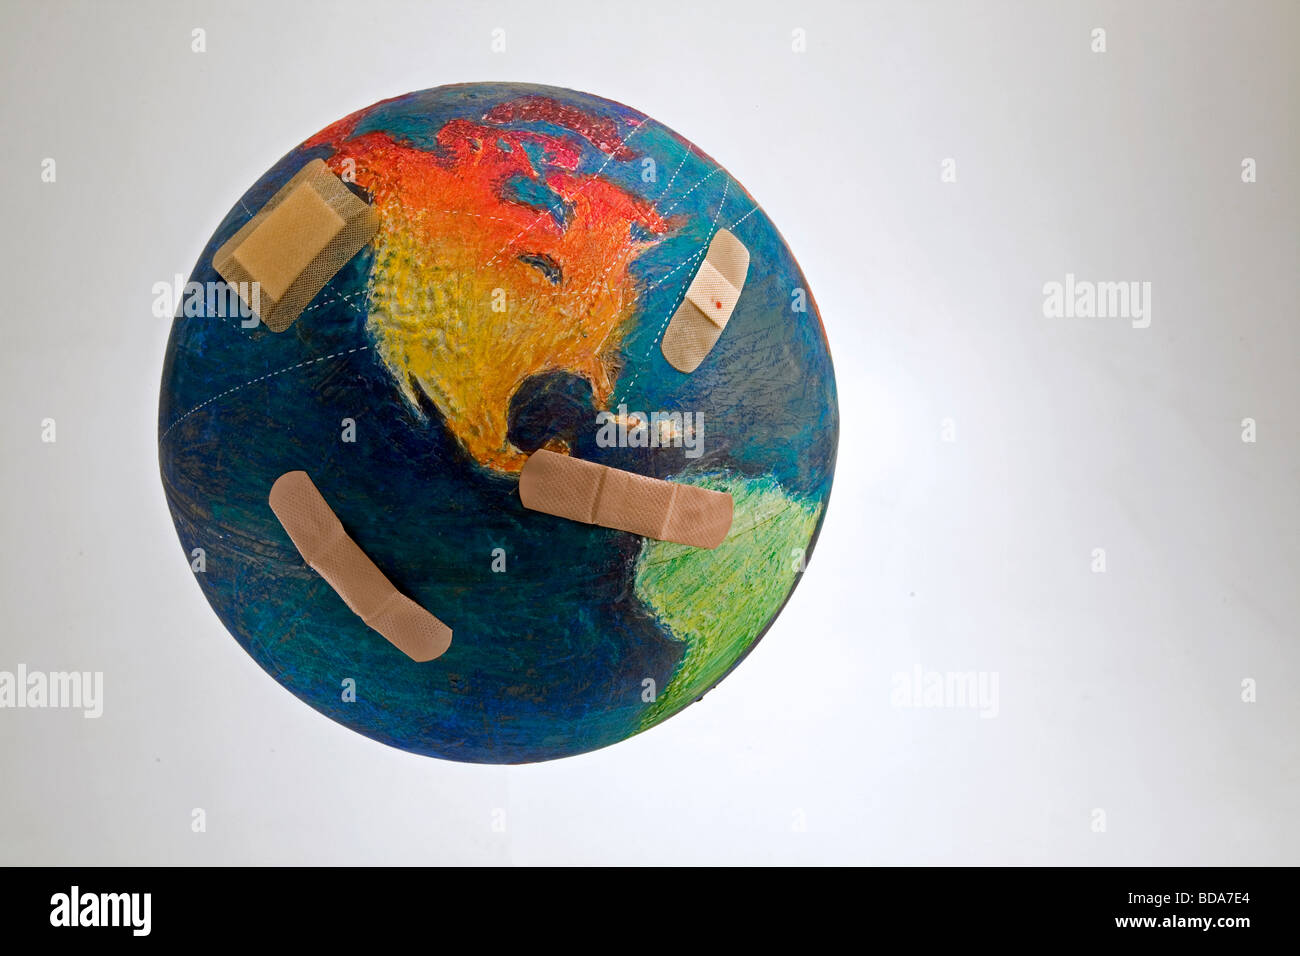 Still shot of a world globe with band aids on the Oceans and Central America - Stock Image